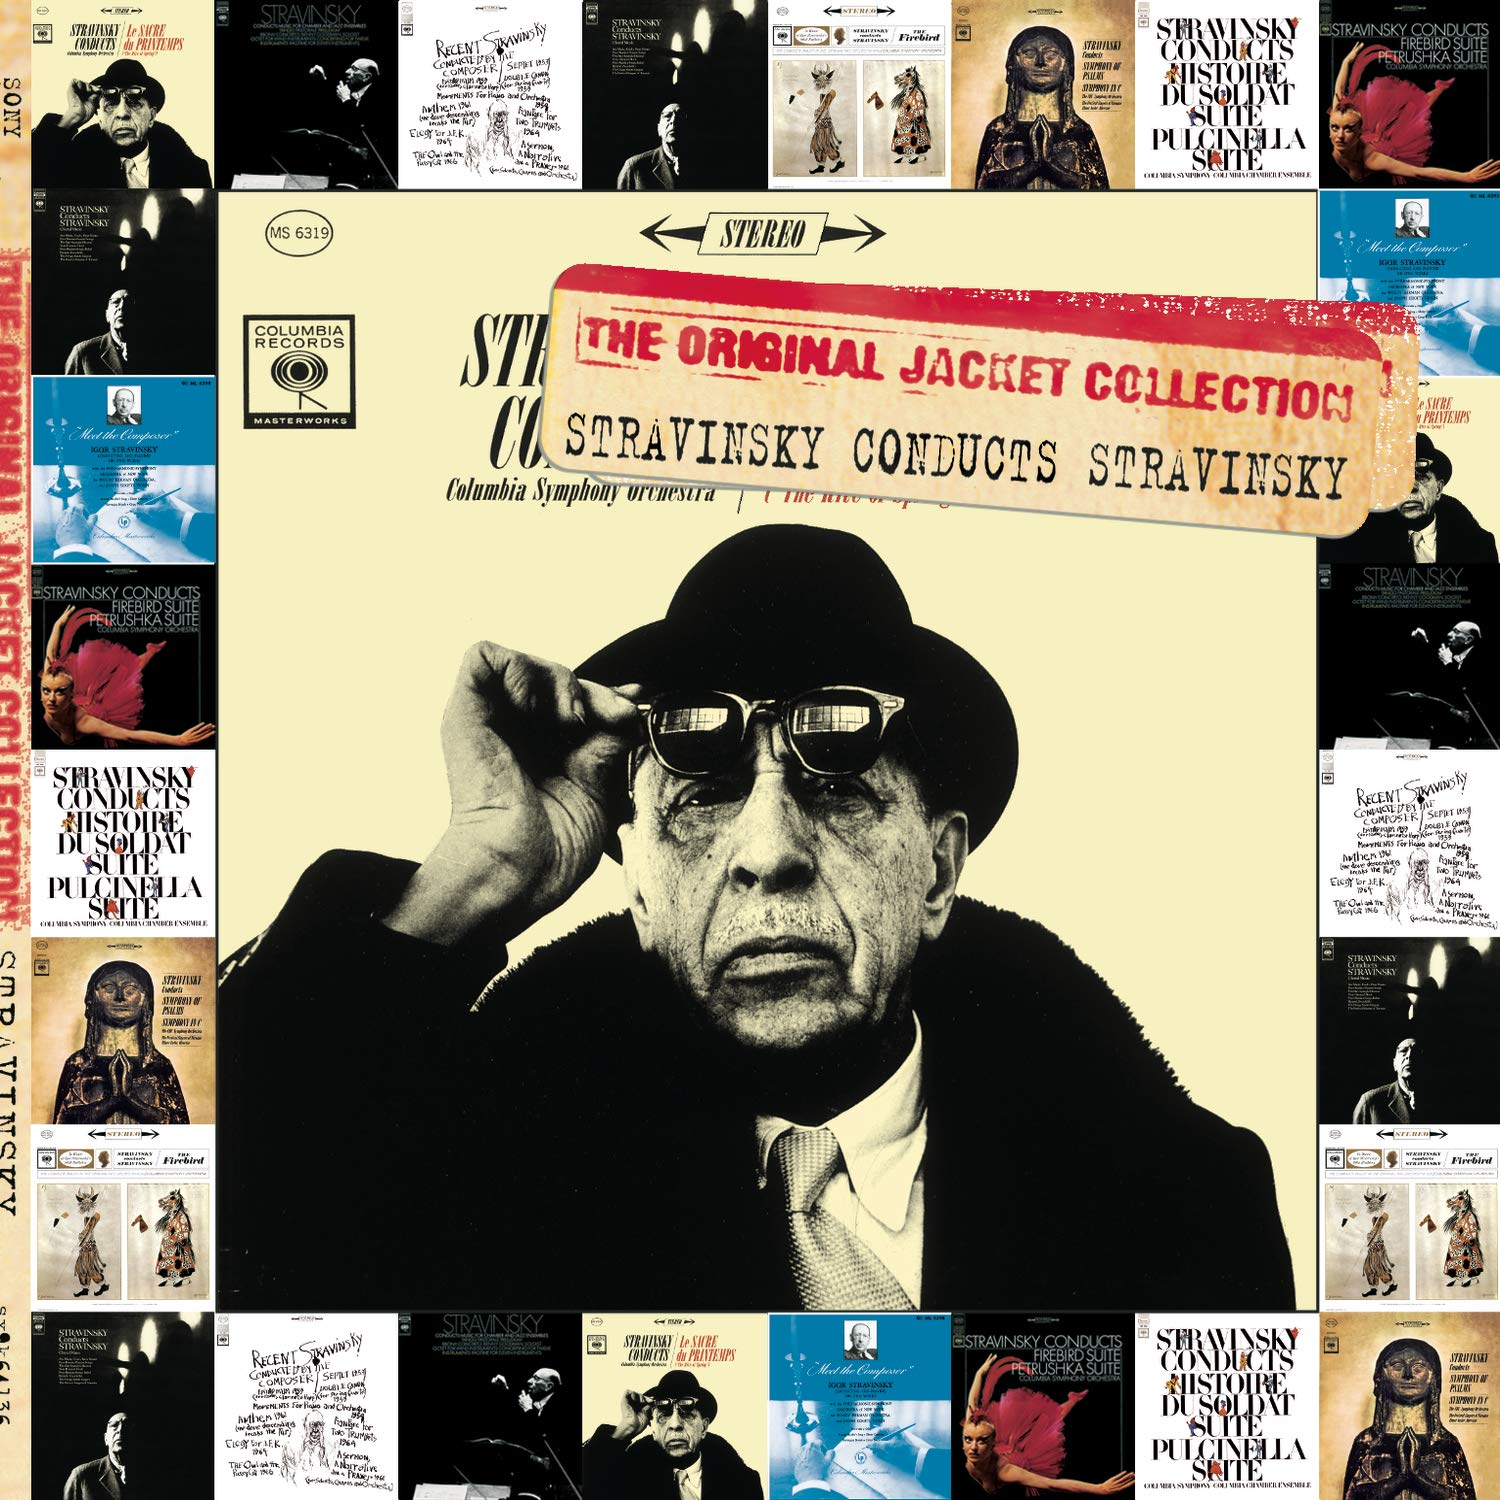 Stravinsky Conducts Stravinsky (The Original Jacket Collection) by Sony Classical